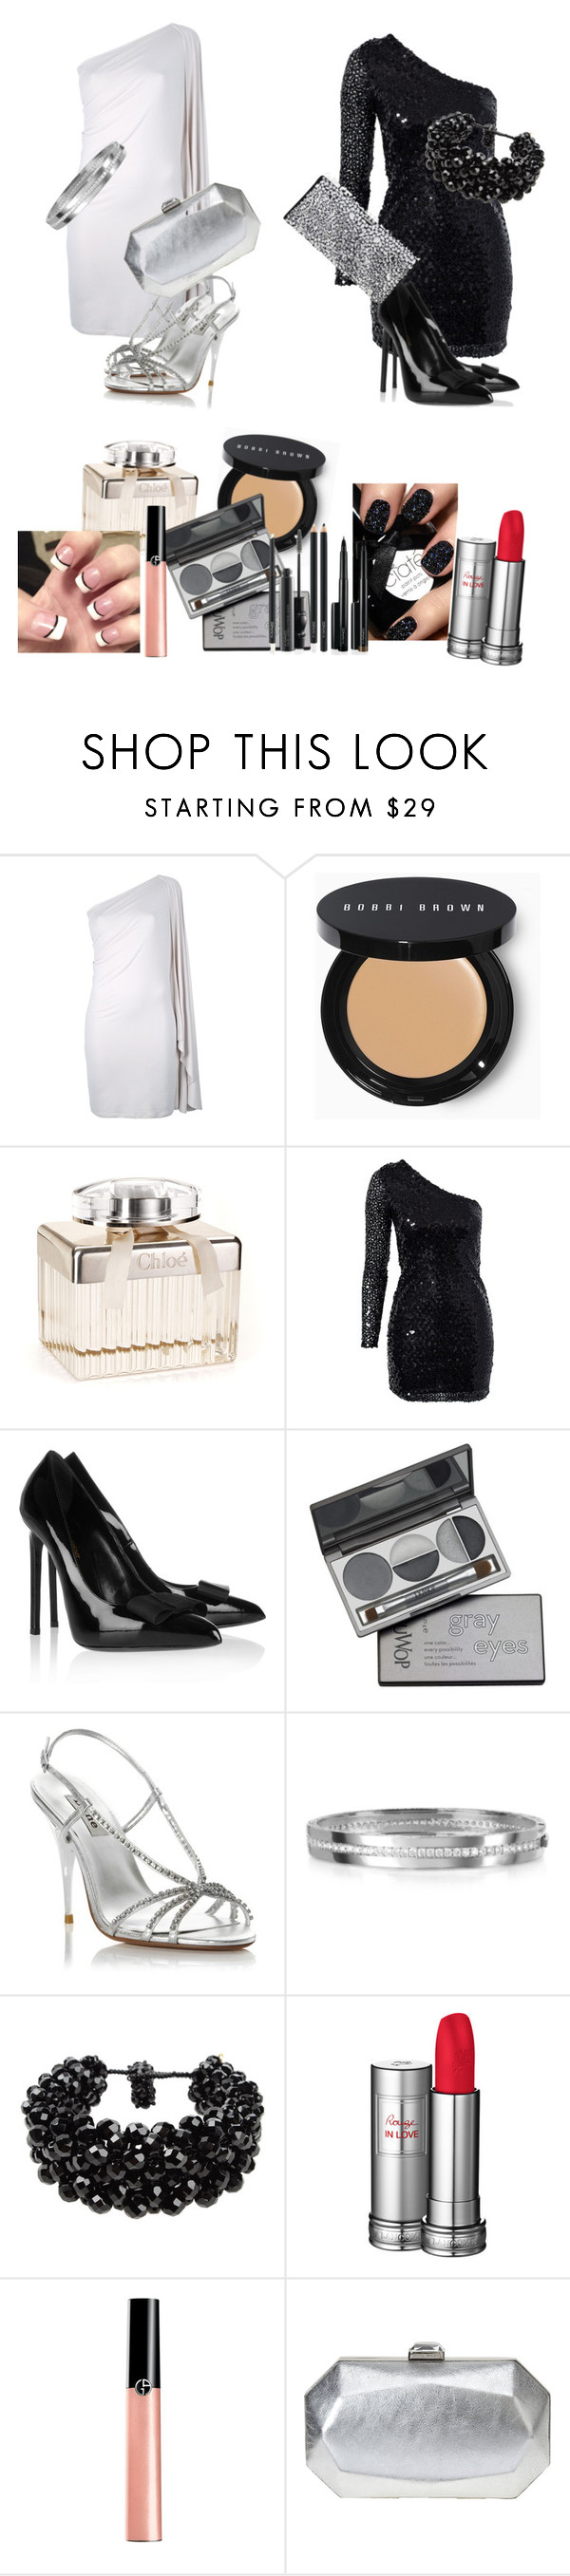 """black and white"" by jenn-morehart ❤ liked on Polyvore featuring Etiquette, Maison Margiela, Bobbi Brown Cosmetics, Free People, Oneness, Yves Saint Laurent, DuWop, Dune, Rebecca and NUR"